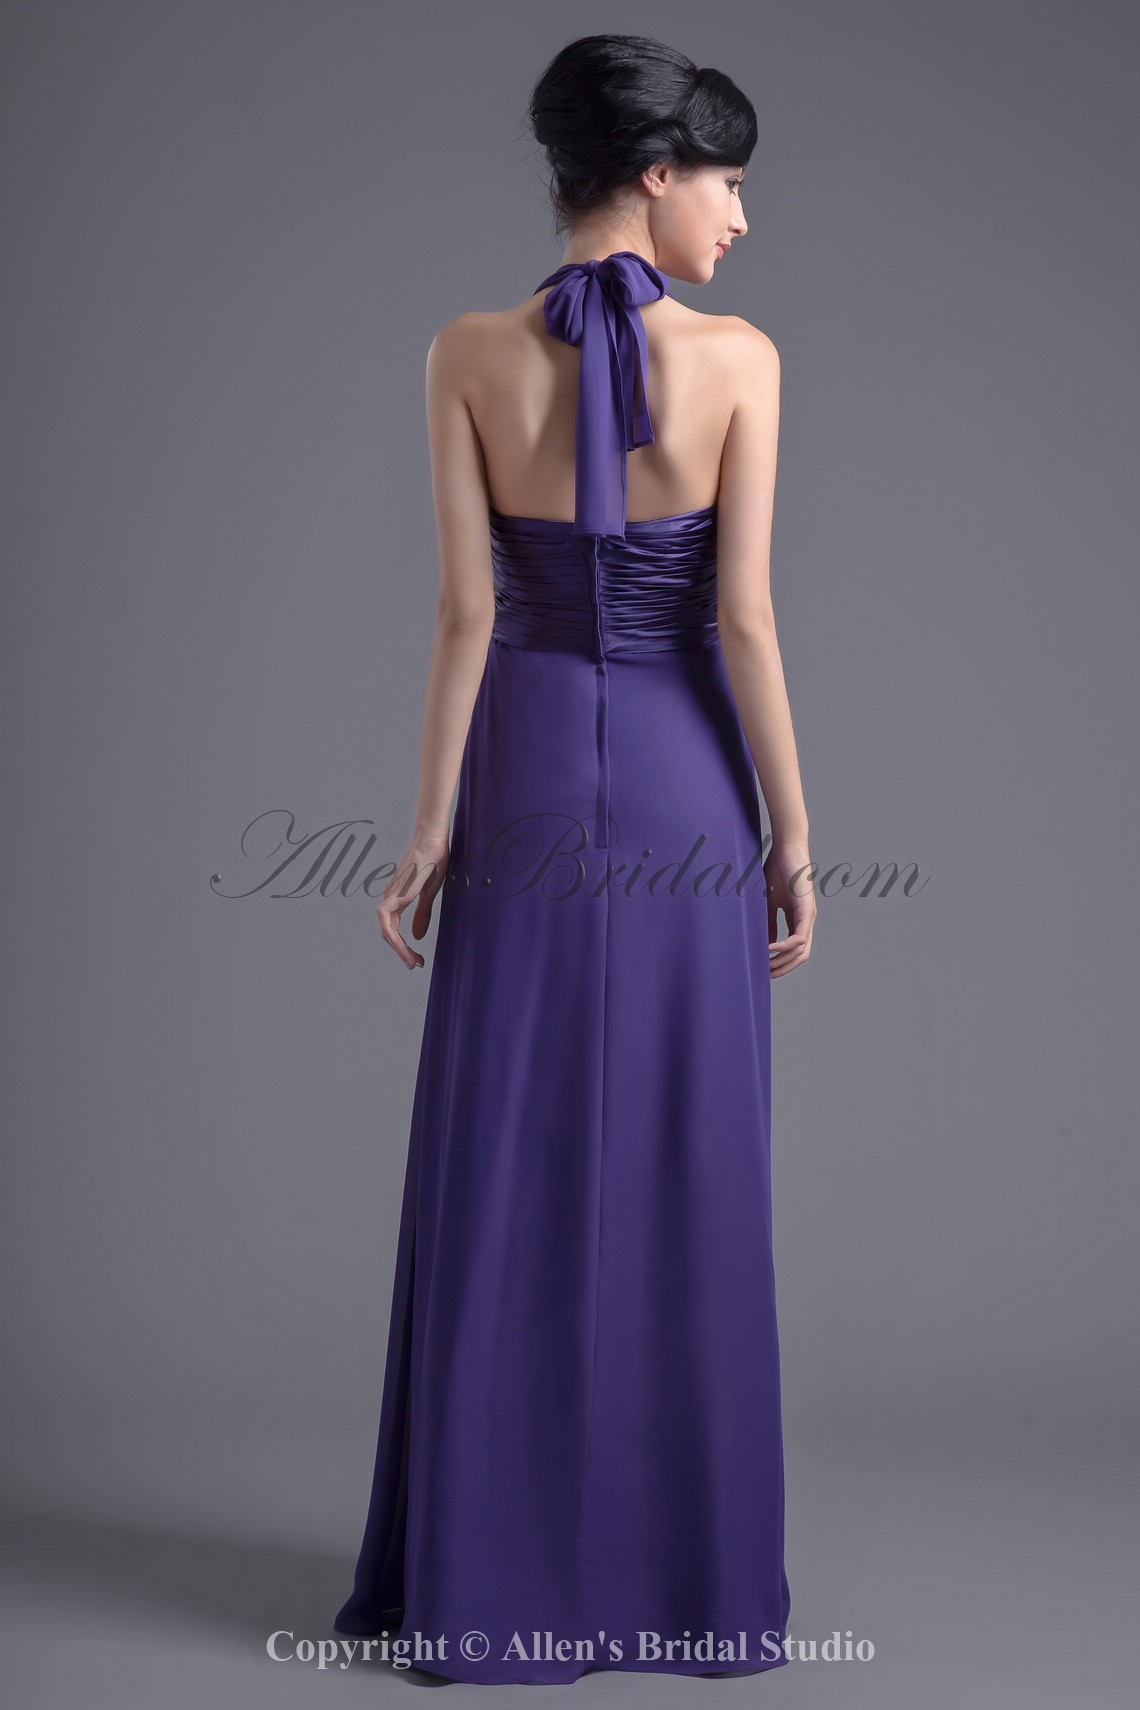 /10-80/chiffon-halter-neckline-column-floor-length-prom-dress.jpg